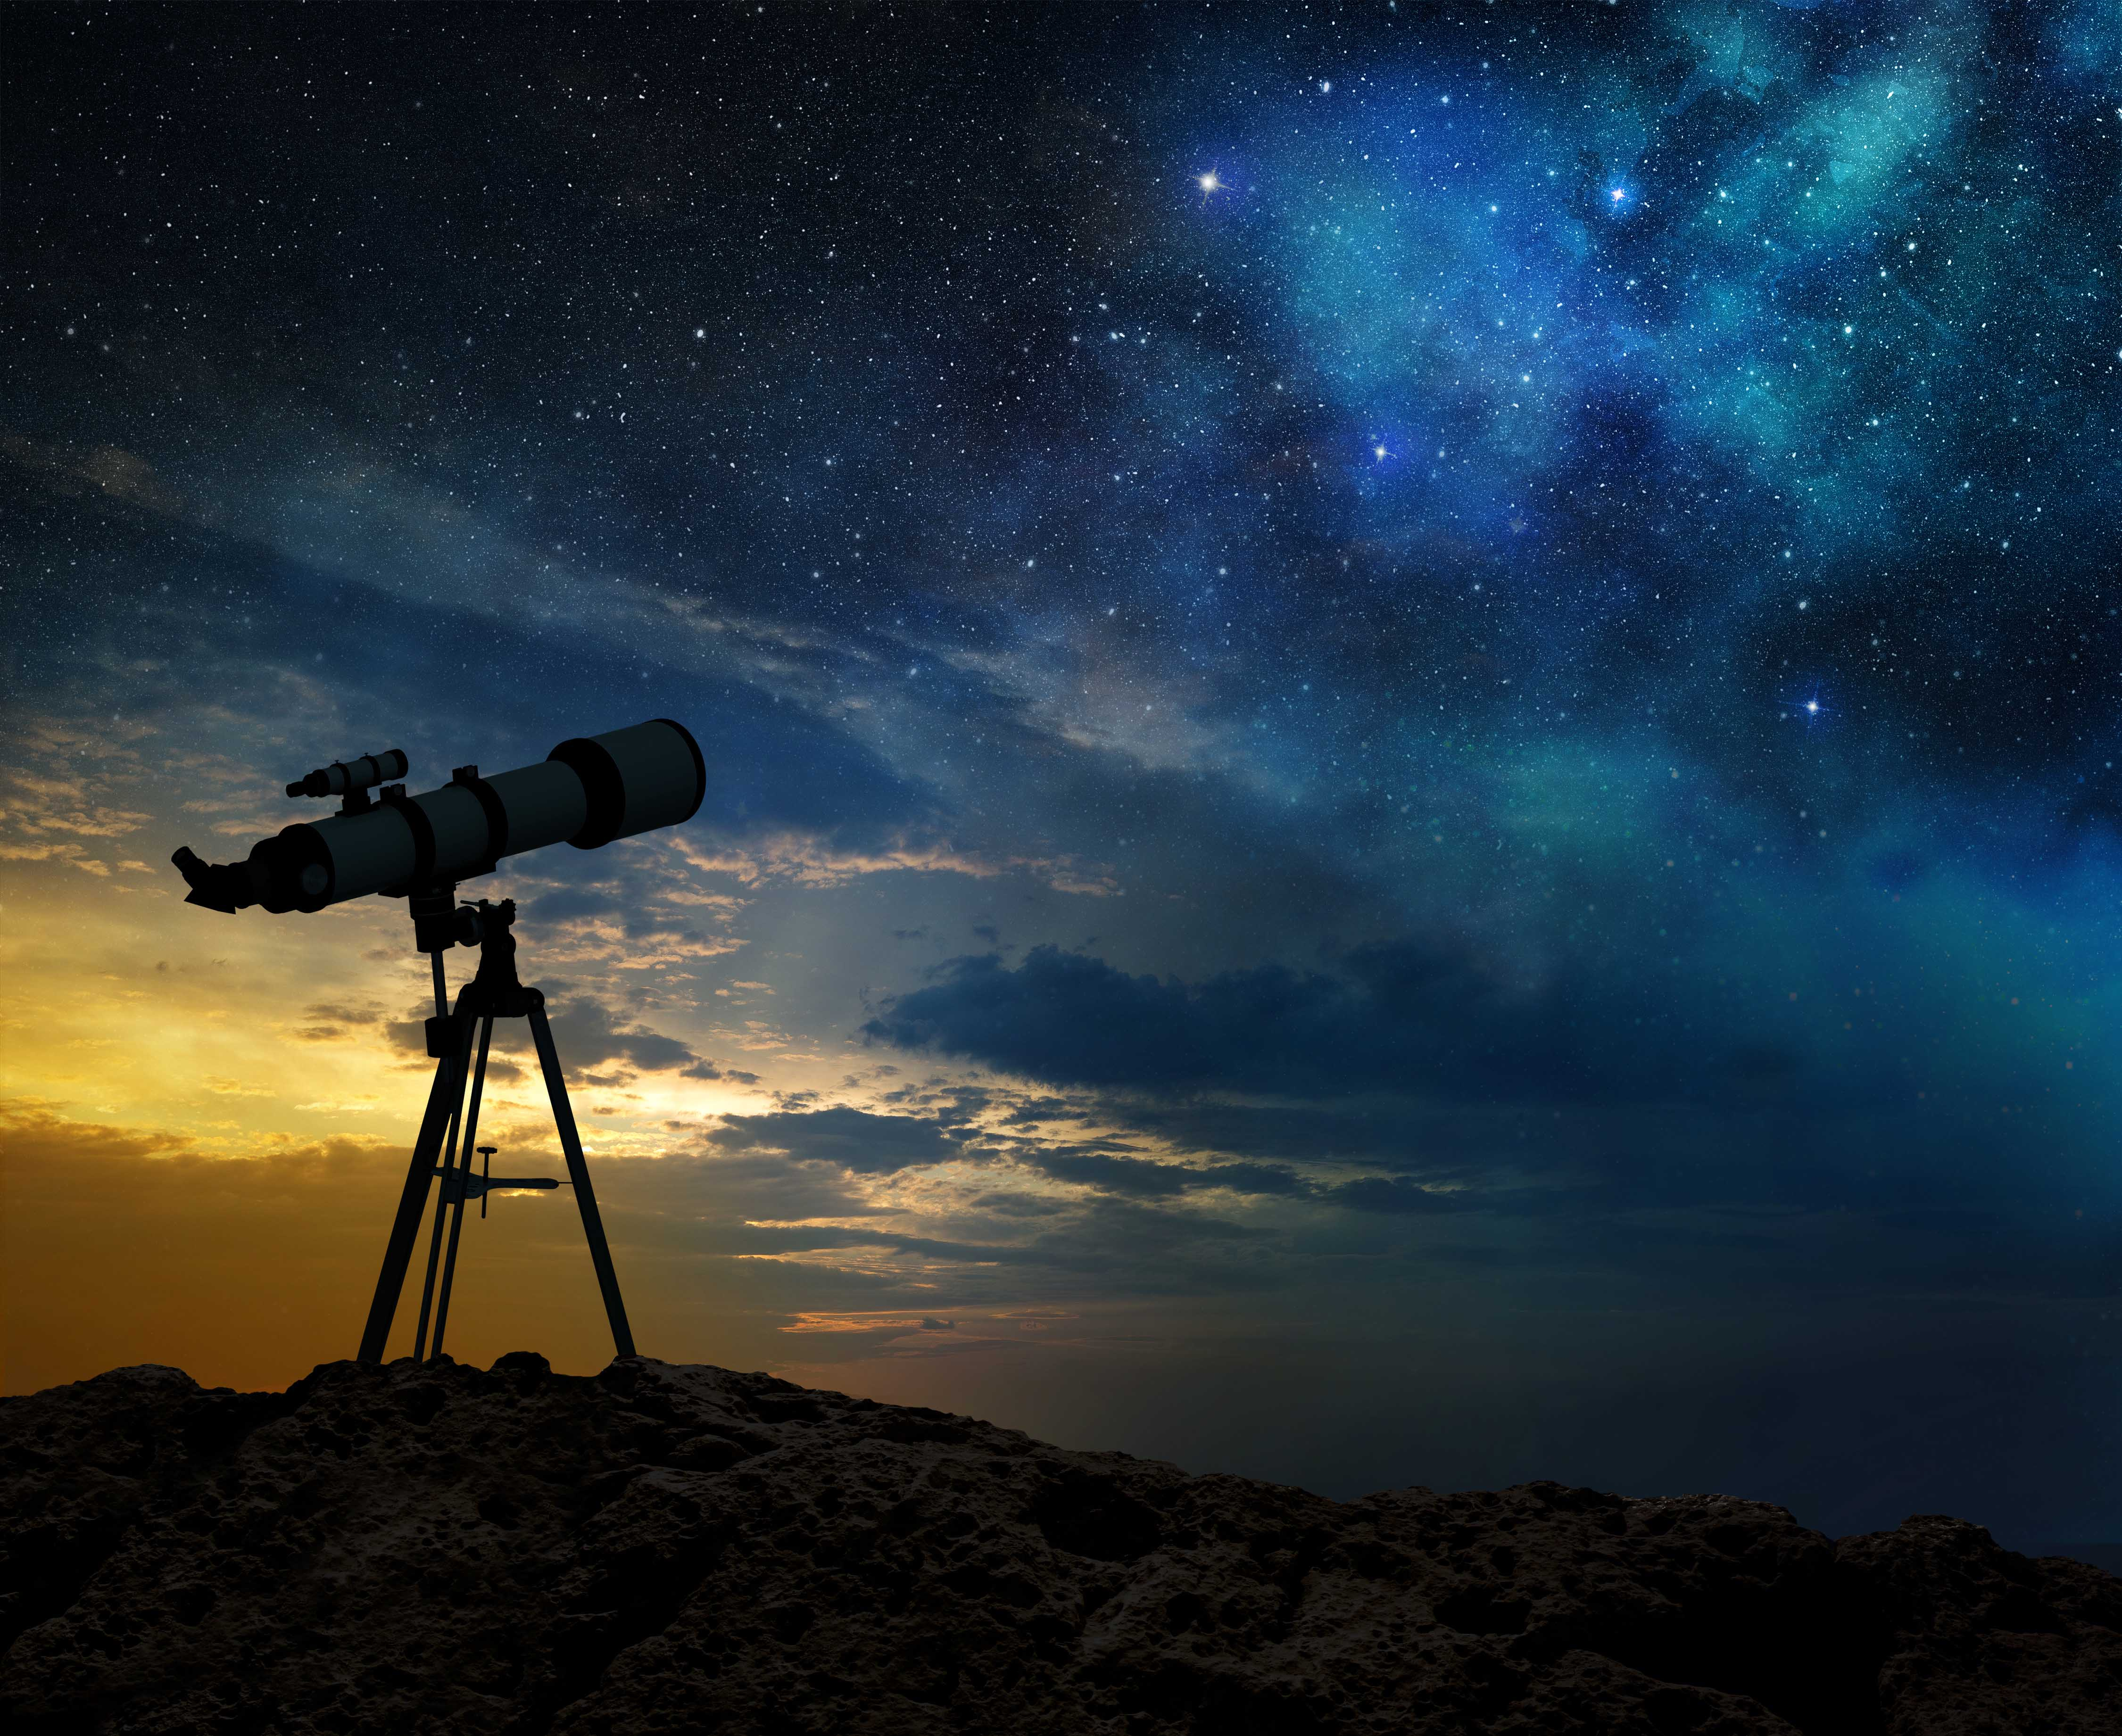 view of a telescope with stars in the sky